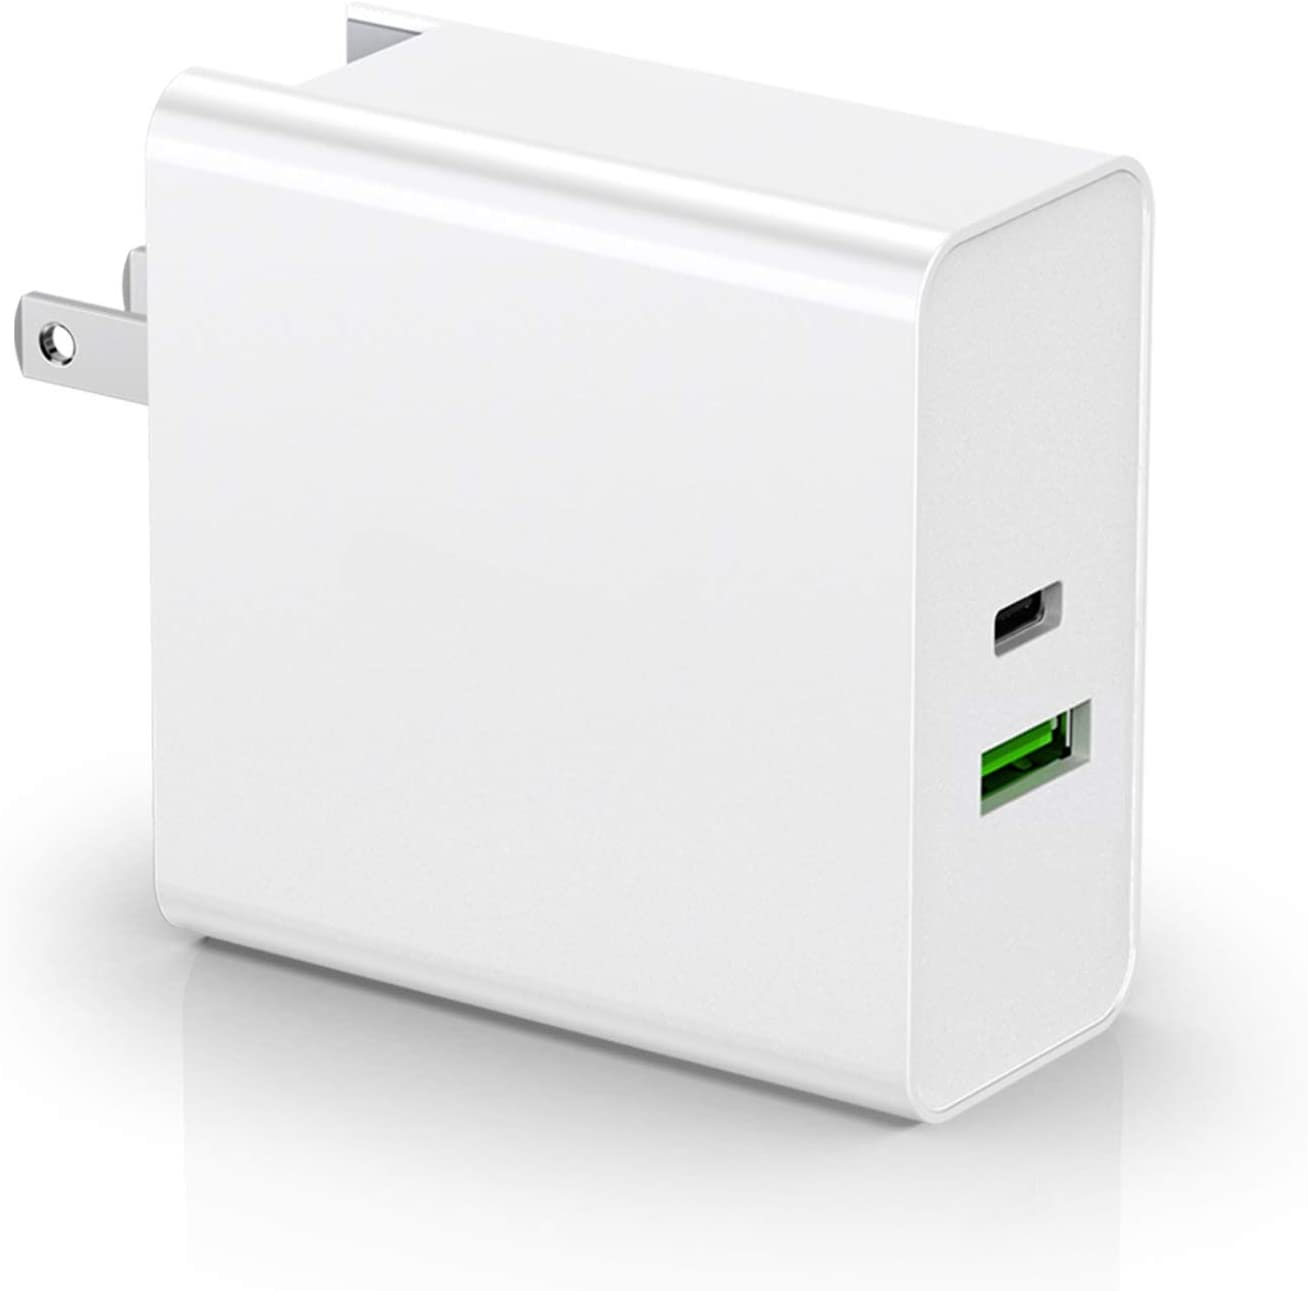 BROQLI USB Type C Portable Wall Charger Adapter with EU Plug, 87W Power Delivery 3.0 for MacBook Pro 16/Air, iPad Pro 2018/Mini, iPhone 11 Pro/XS/Max/XR/X/8 Plus, Galaxy Note10/S10/S9, Pixel (White)